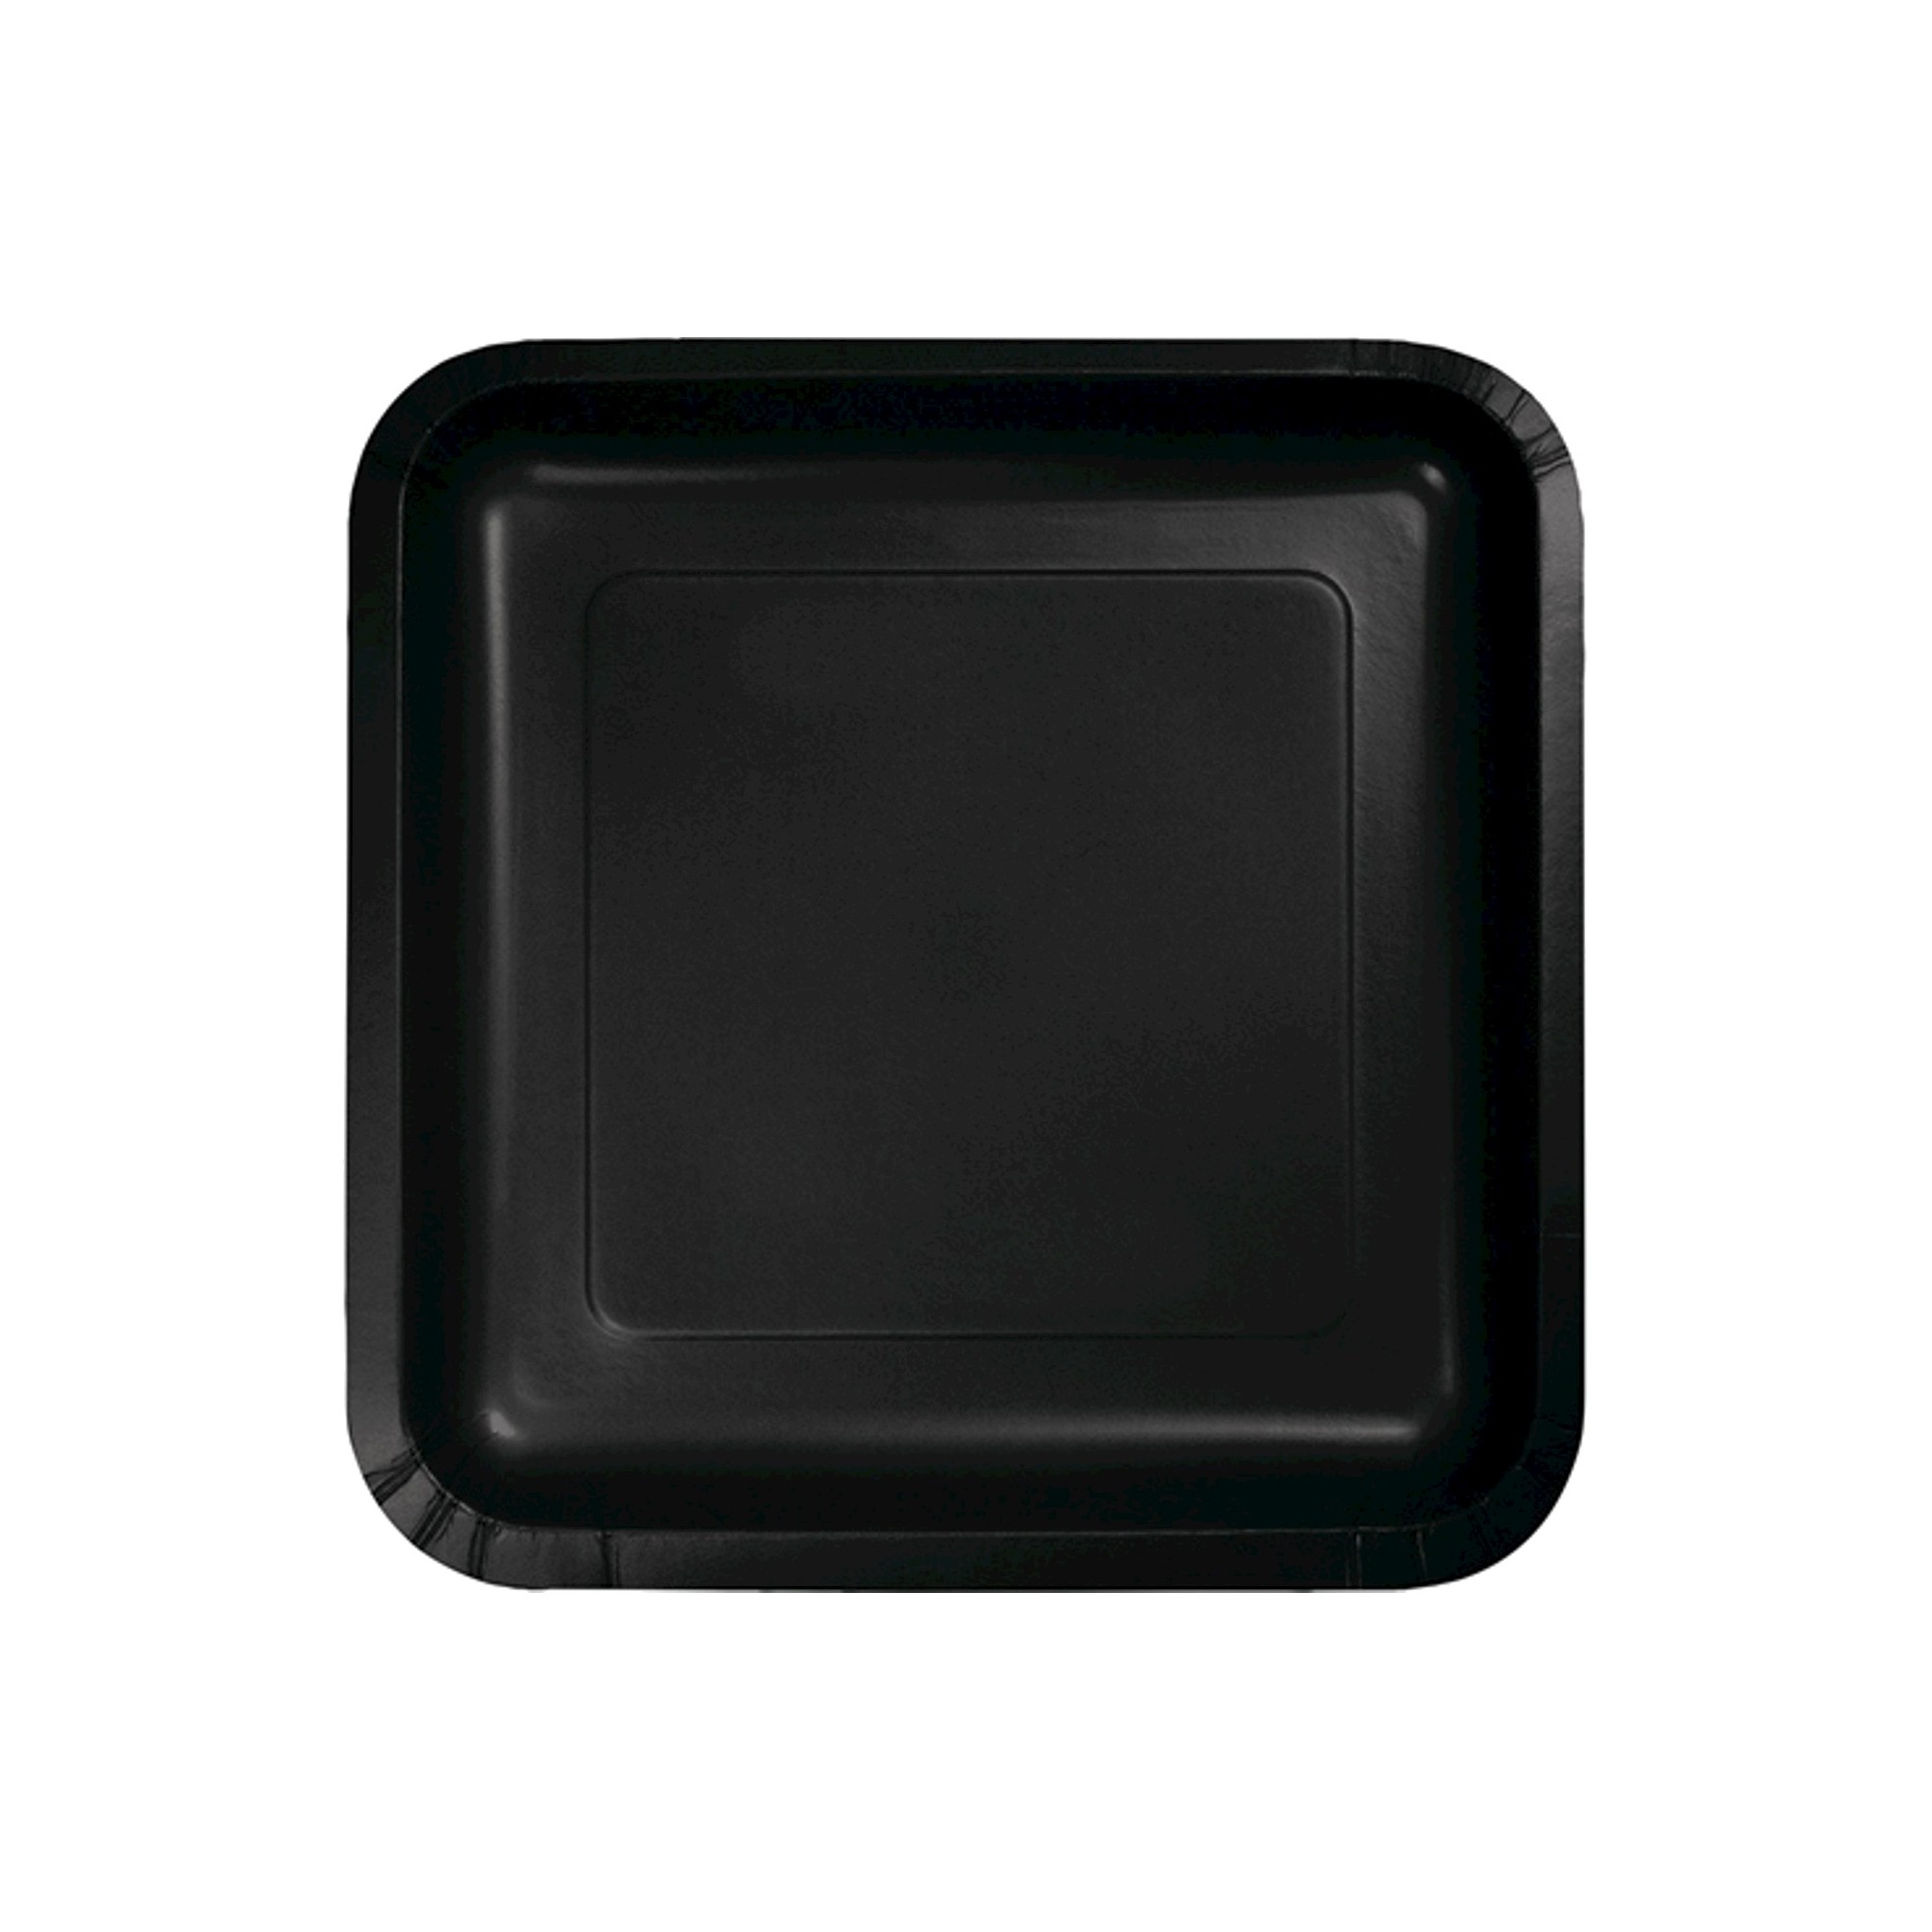 18ct Black Disposable Plates  sc 1 st  Pinterest : black disposable plates - Pezcame.Com